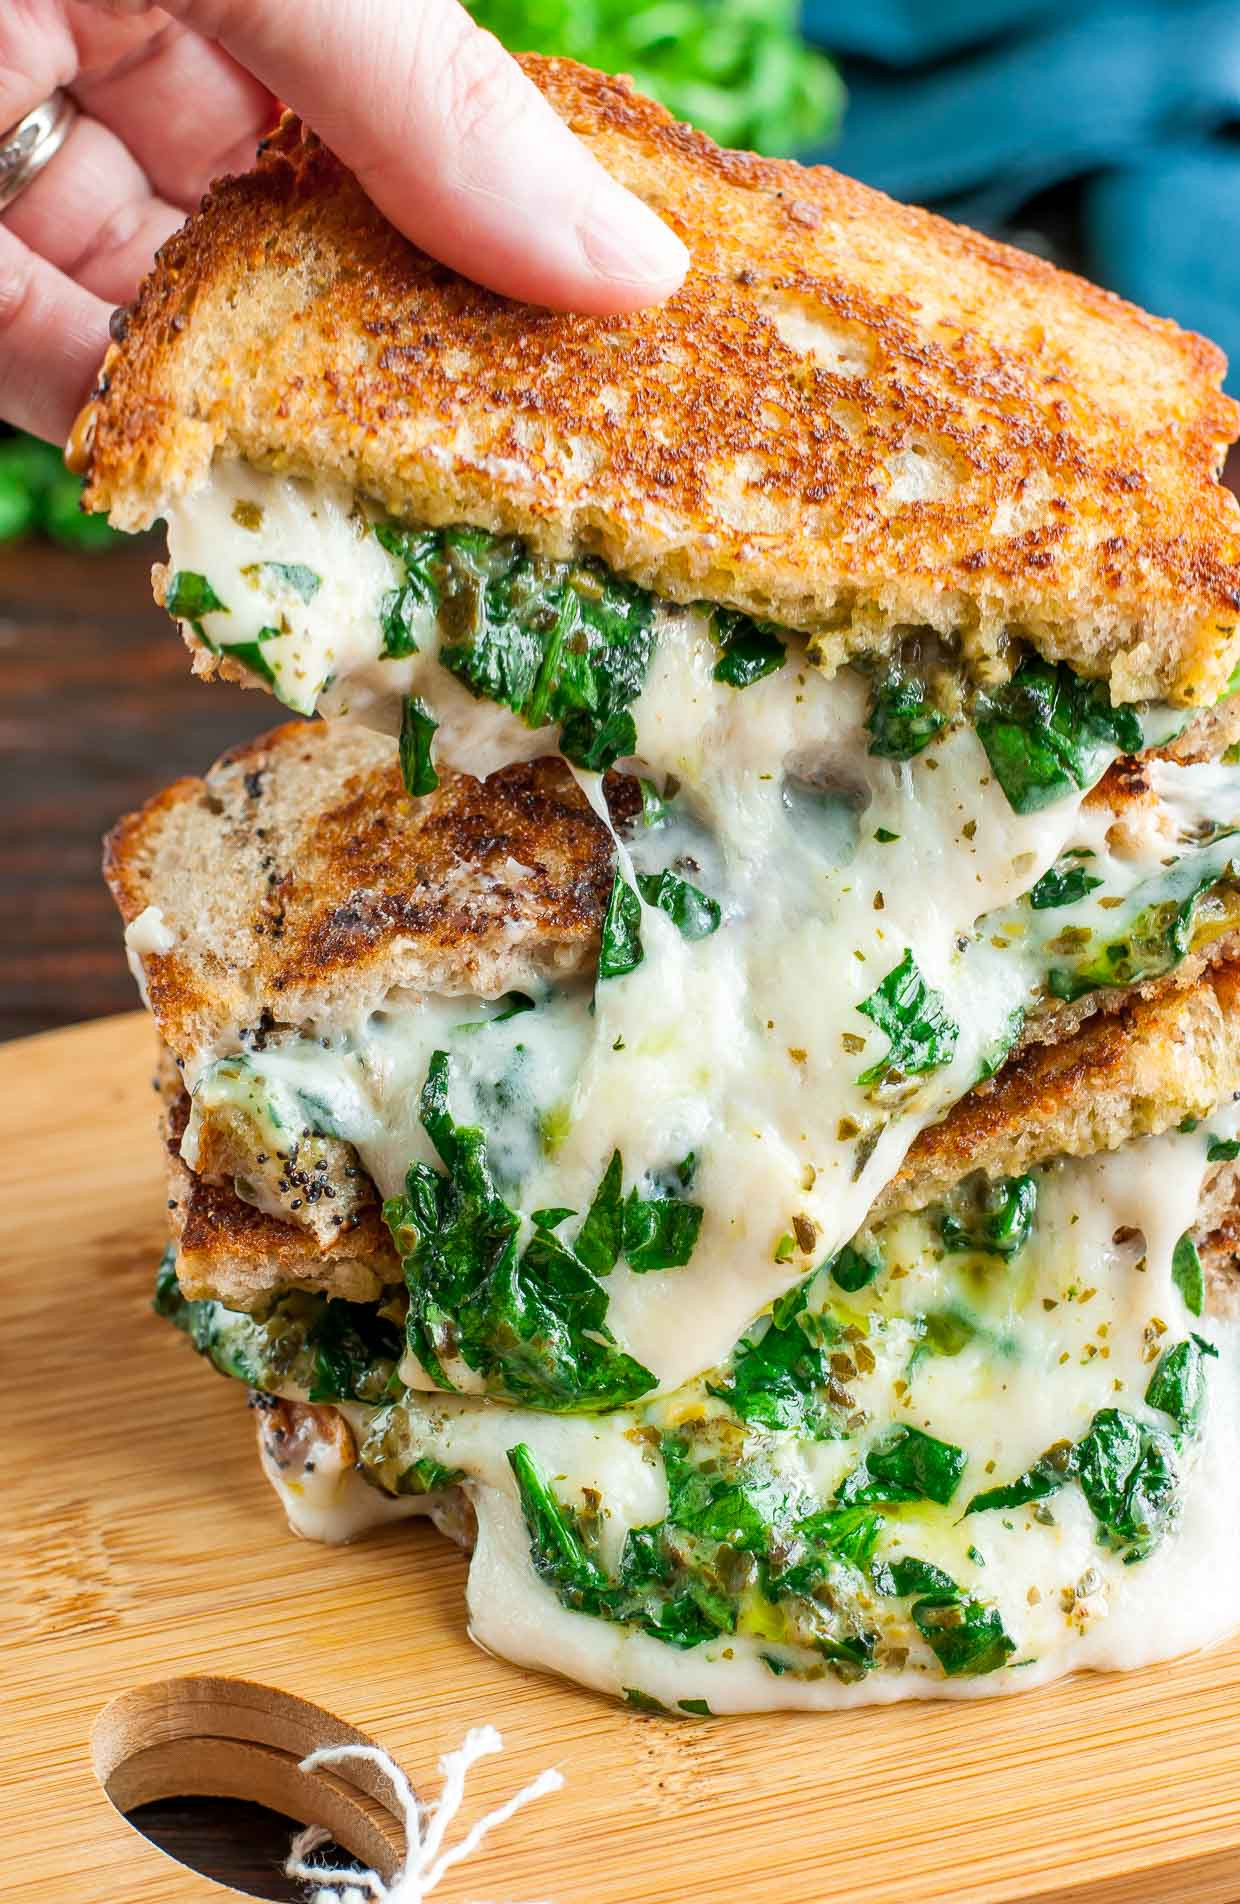 Healthy Vegetarian Sandwich Recipes  19 Healthy Vegan Sandwich Recipes that are Perfect for